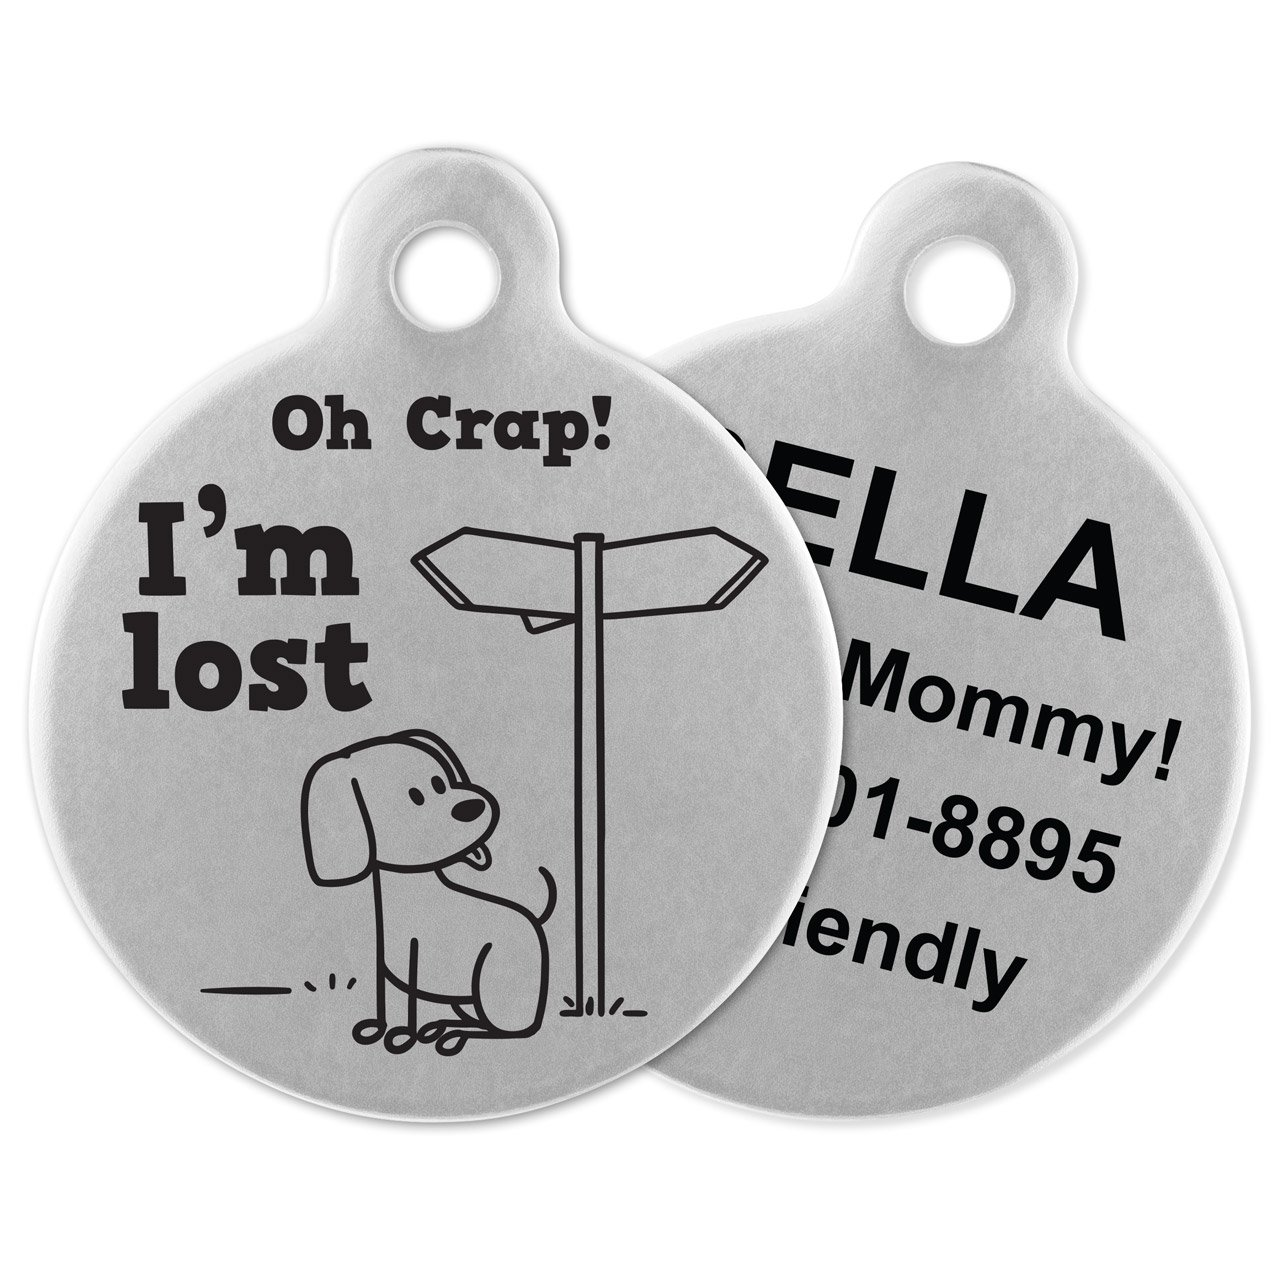 If It Barks Engraved Pet ID Tags For Dogs - Personalized Pet ID Name Tag Attachment - Made in USA, Stainless Steel Dog Tags (I'm Lost)